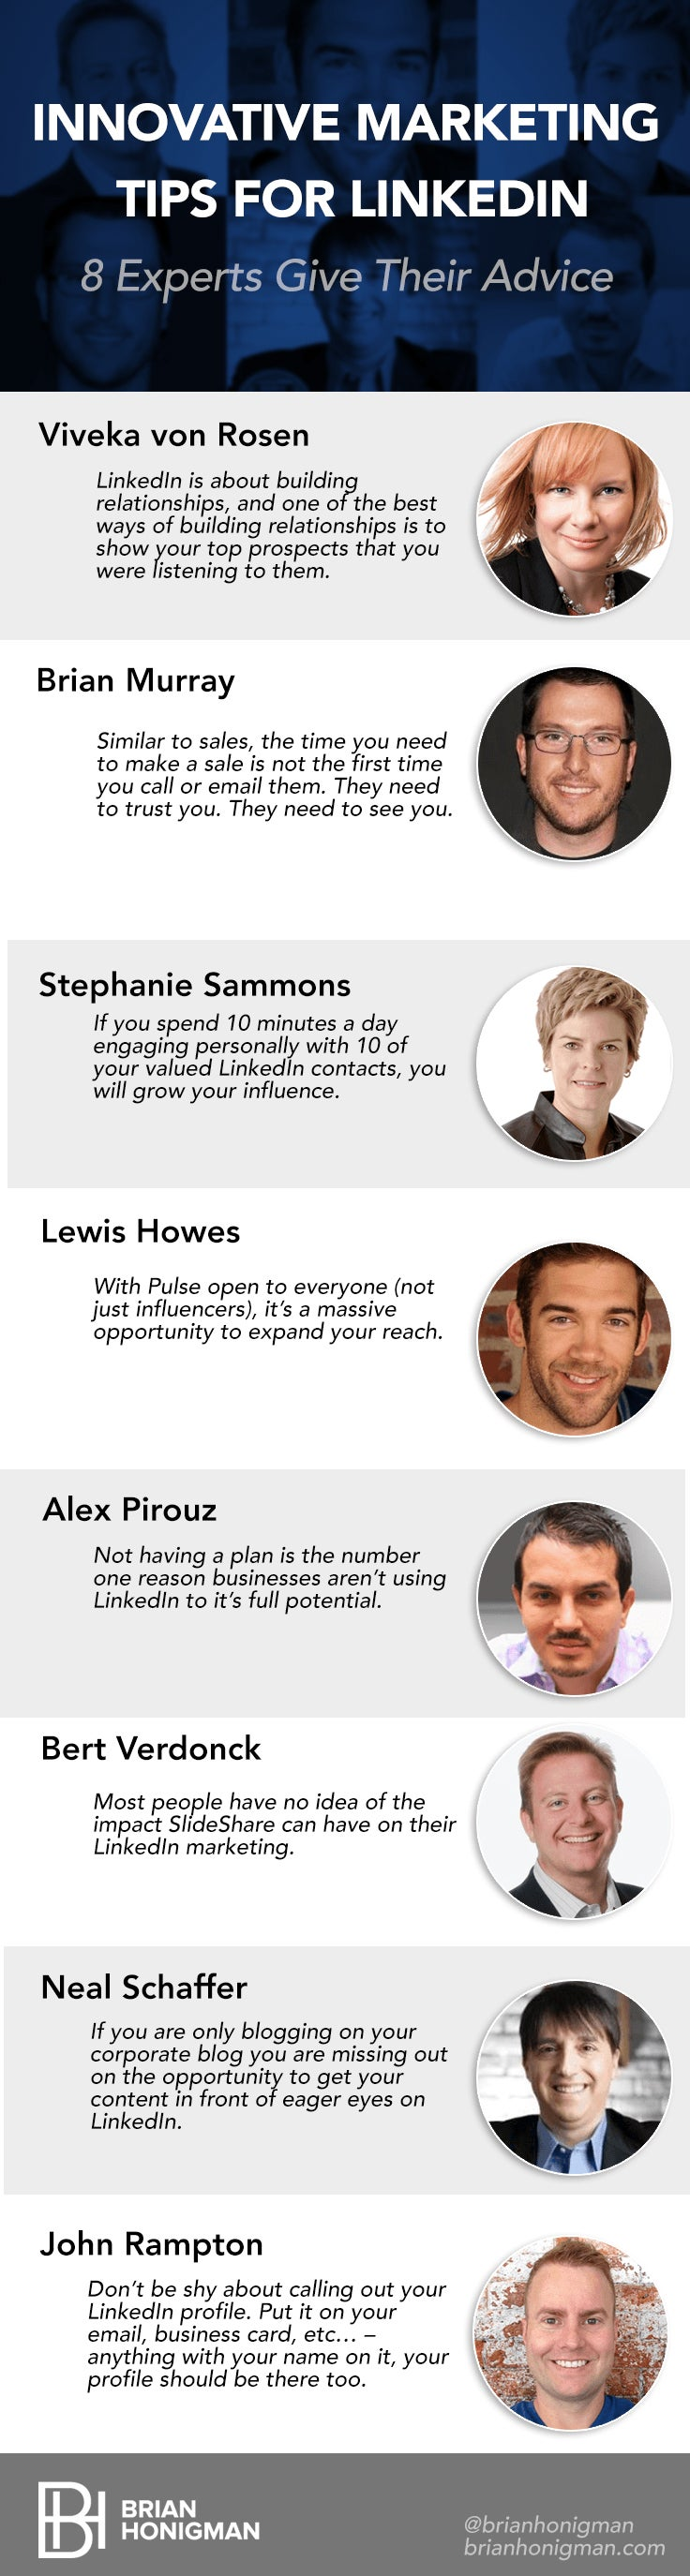 8 Ways to Better Market Yourself on LinkedIn in 2015(Infographic)